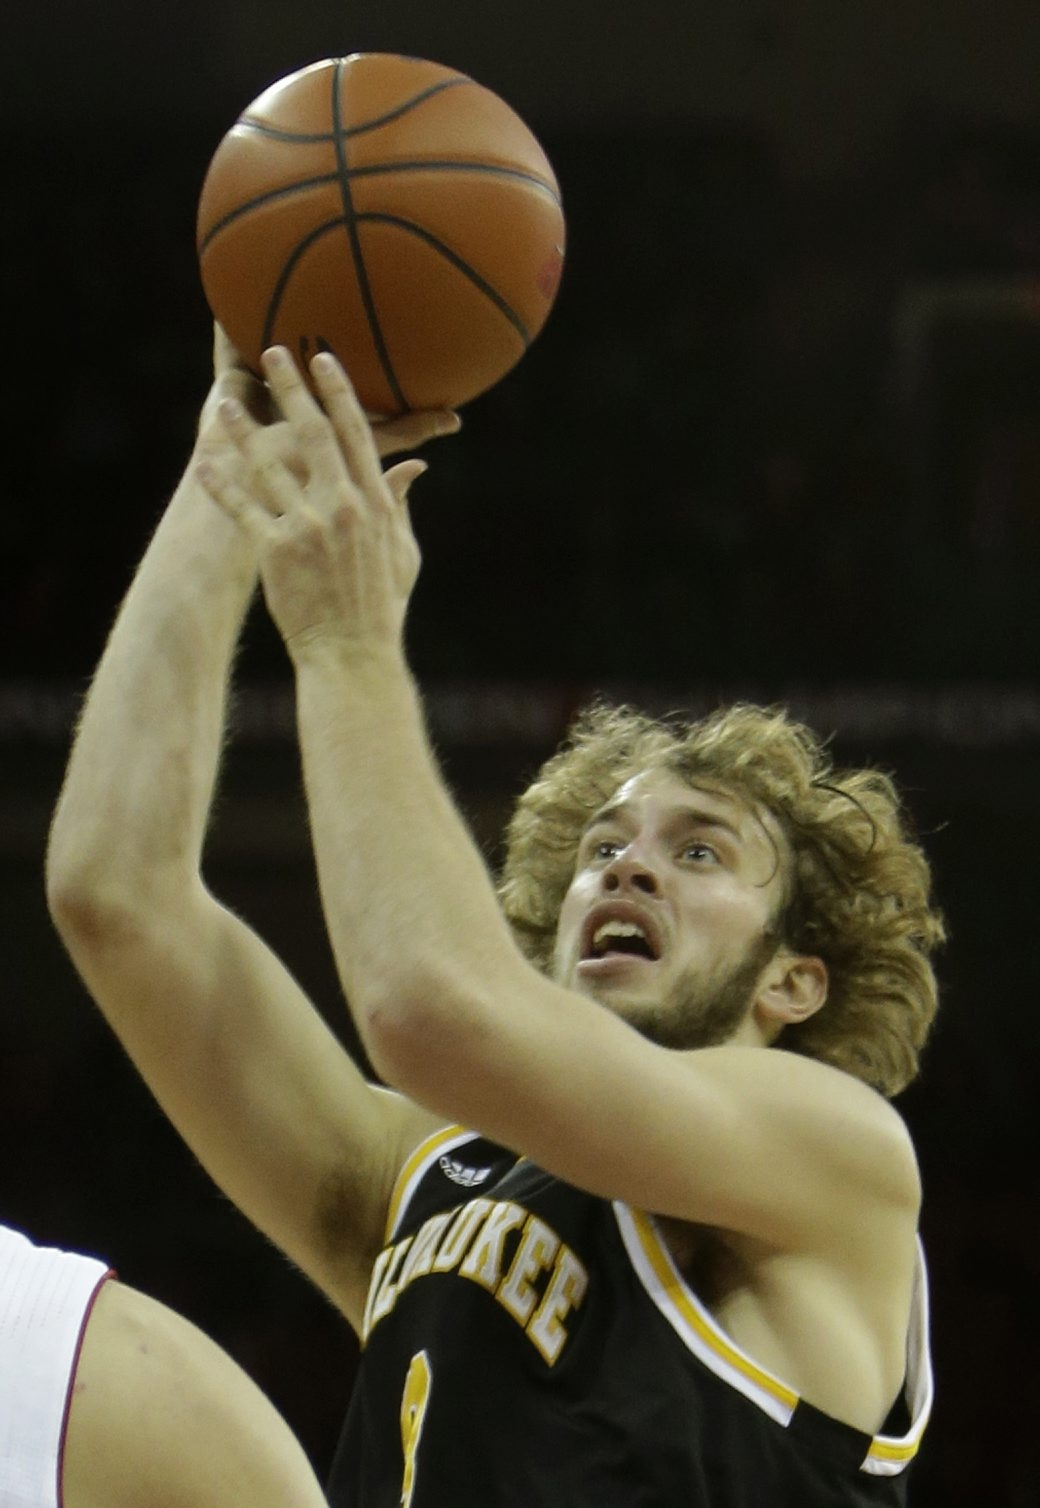 Kyle Kelm of the University of Milwaukee Panthers pulls up for a jump hook against the Wisconsin Badgers on Dec. 11.